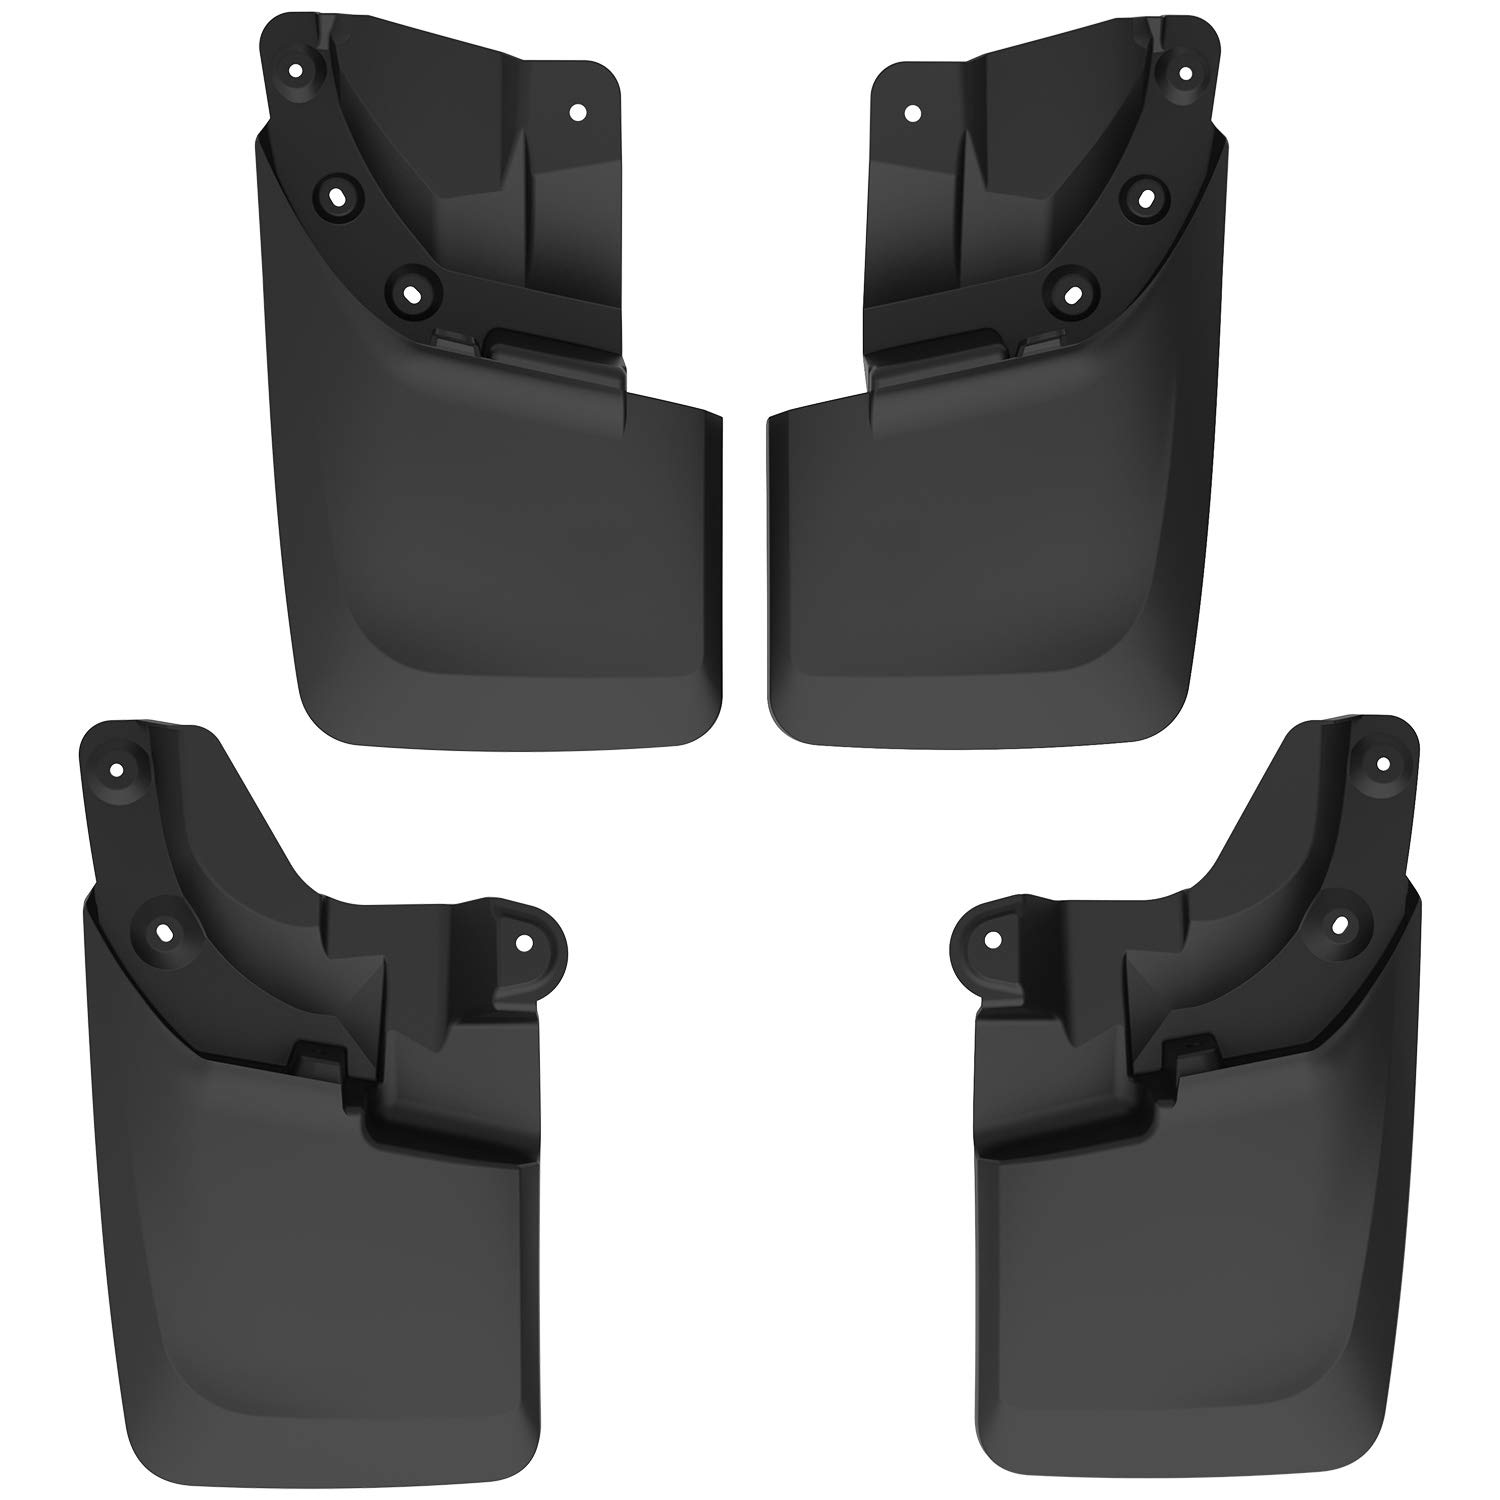 with OEM Fender Flares ONLY oEdRo Mud Guards Compatible with 2016-2018 Toyota Tacoma Front /& Rear Mud Flaps